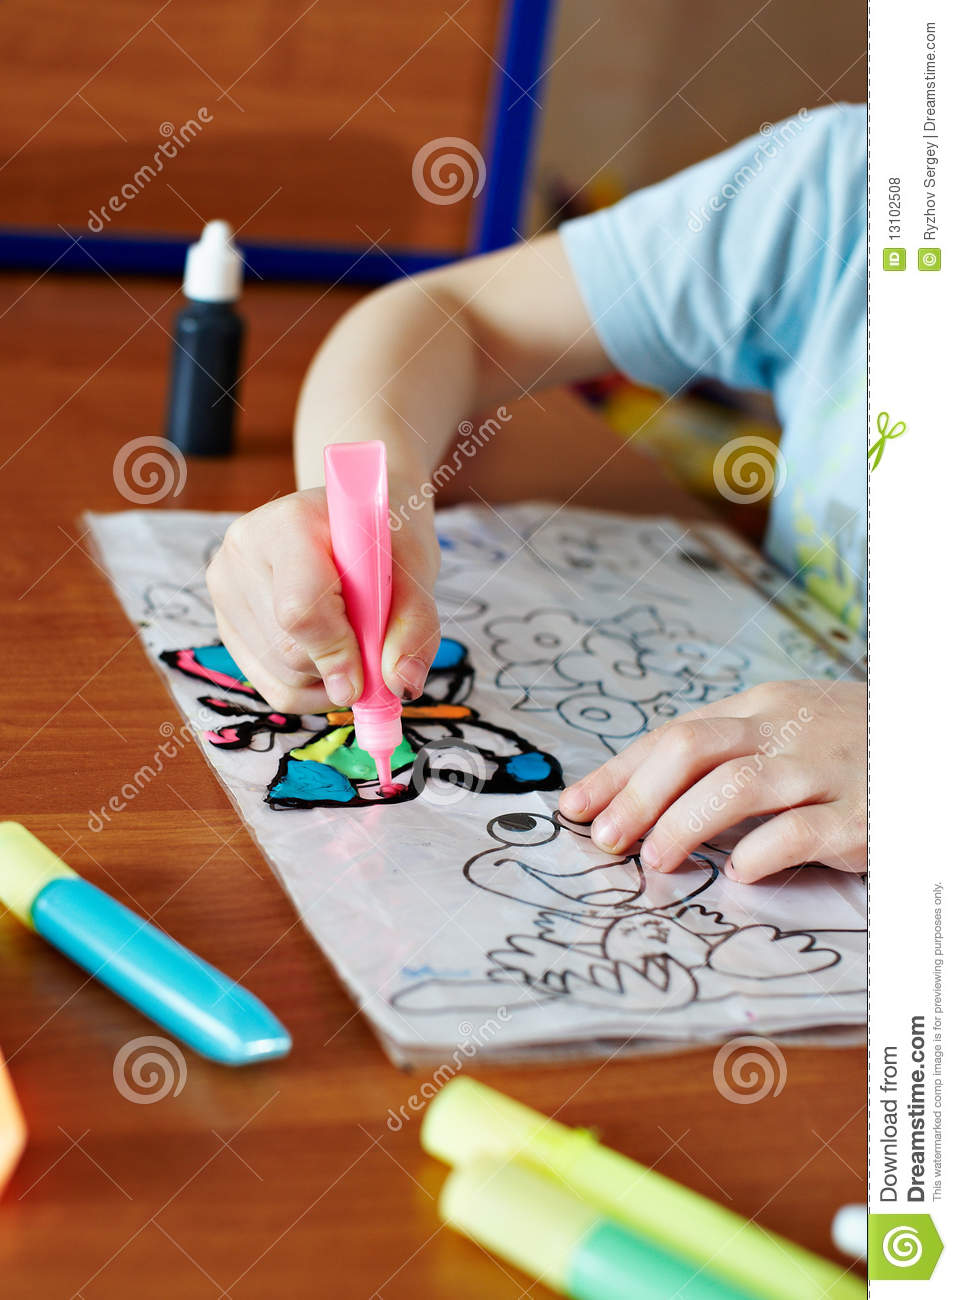 Small child draws pink paint for stained glass royalty free stock photos image 13102508 - Resource com verven ...